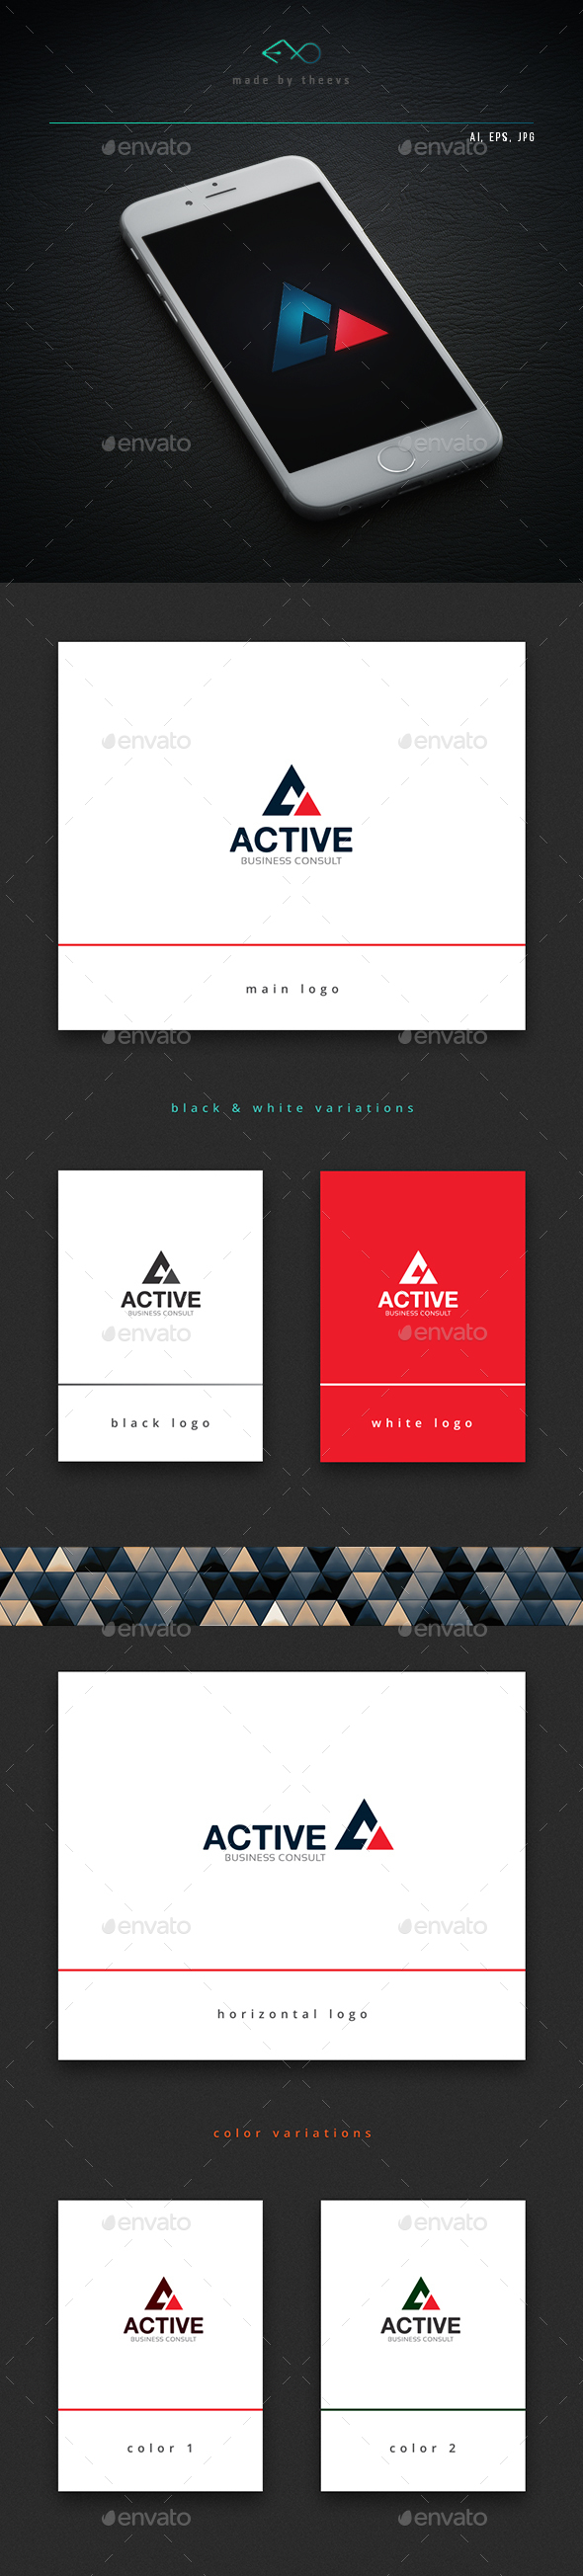 Active - Vector Abstract